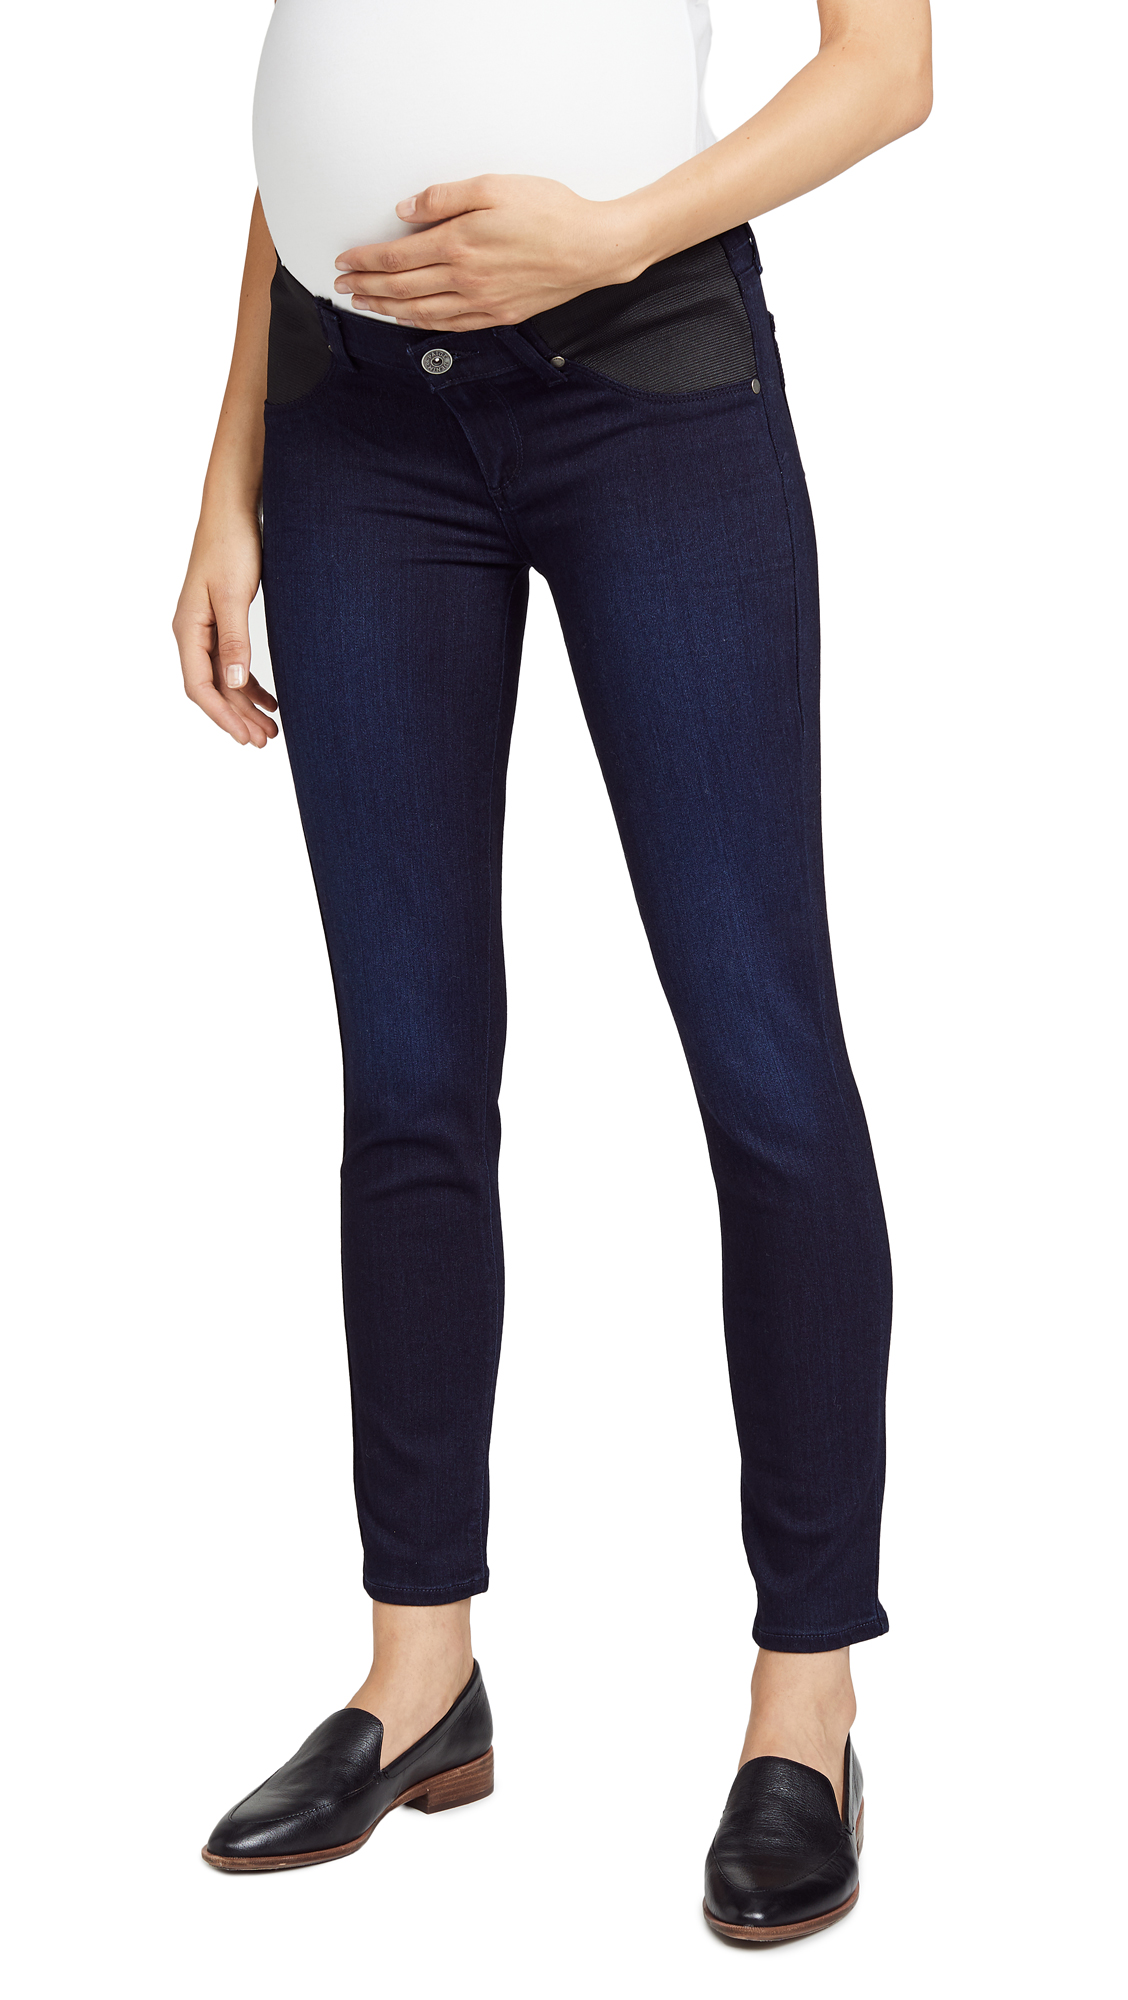 Verdugo Ankle Maternity Jeans